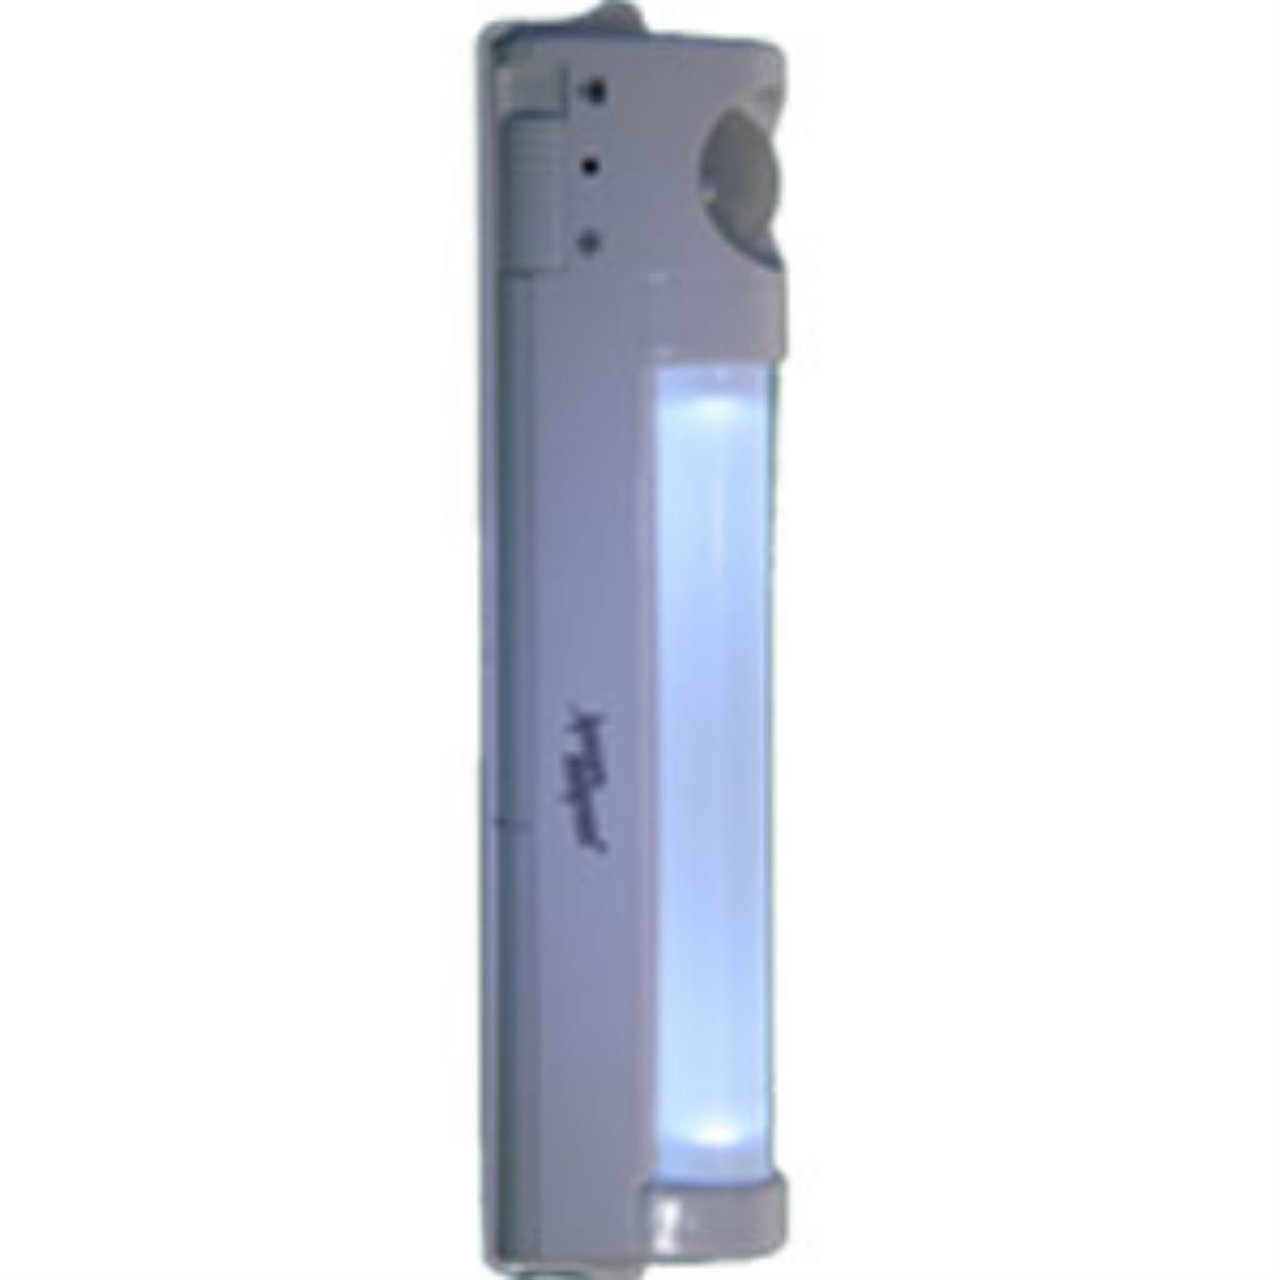 NM-MOTION-011 Minder Research Multi Purpose Light- LED Motion